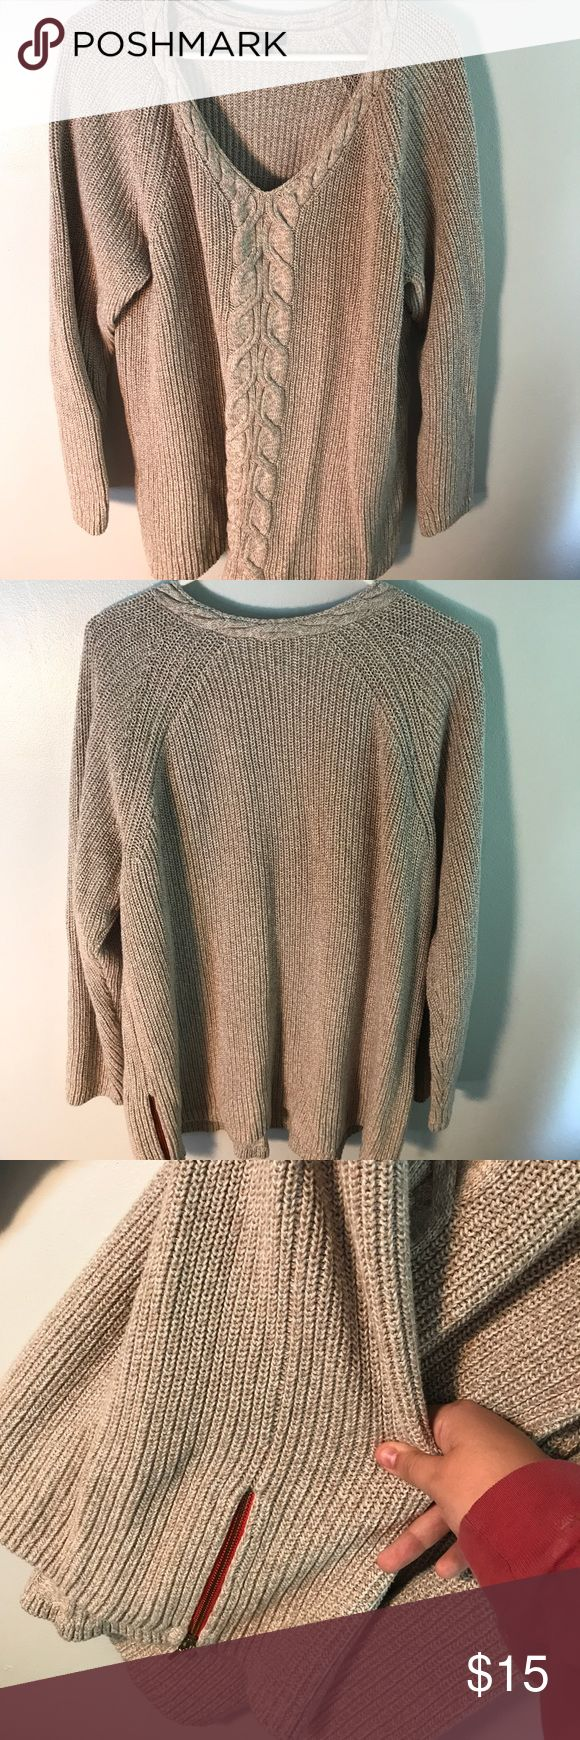 Talbots Women's Chunky Cable Knit Sweater Never worn, tan, oversized knitted sweater from Talbots. Full length sleeves. Overall longer in length, perfect for wearing with leggings. Orange-ish red zipper detailing on both sides of the sweater. Best fits sizes 16-20. No stains or tears. Talbots Sweaters V-Necks